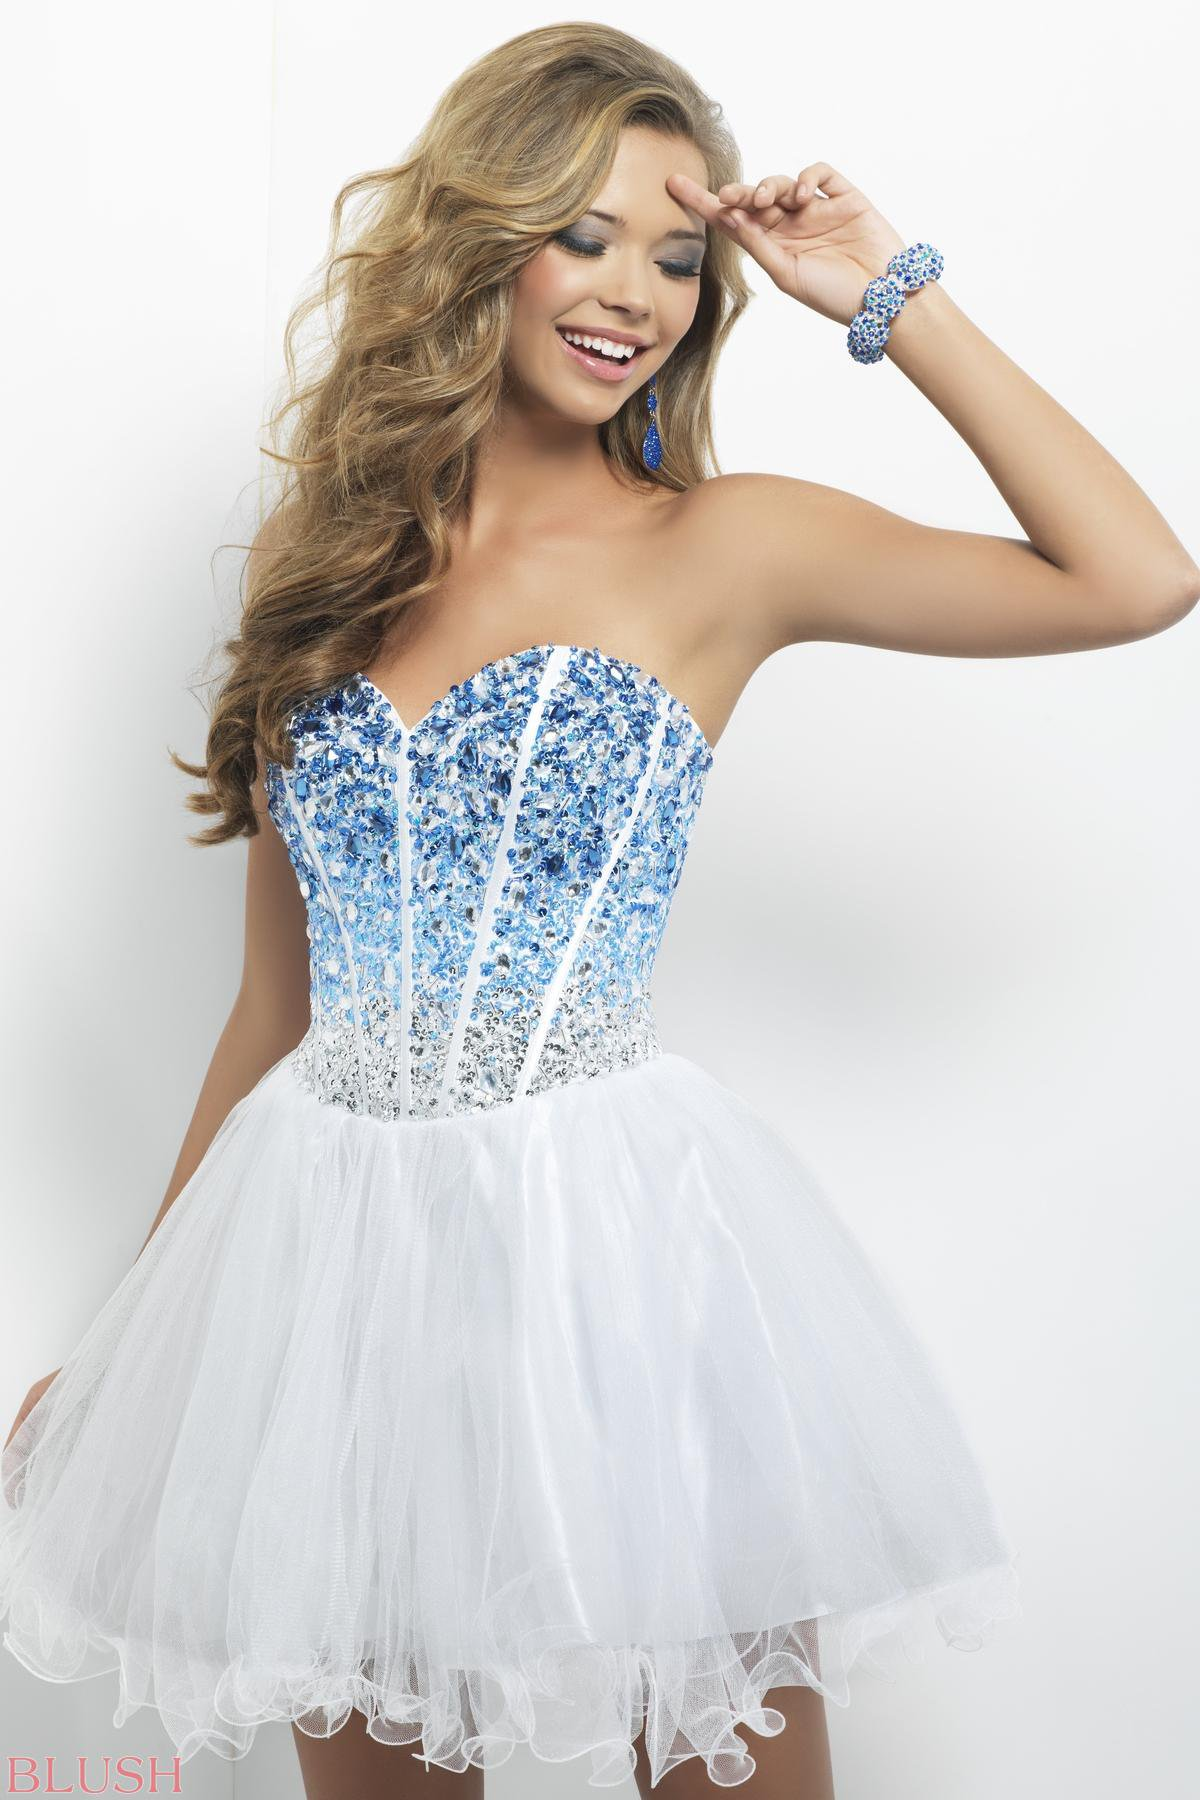 White and Blue Short Prom Dresses